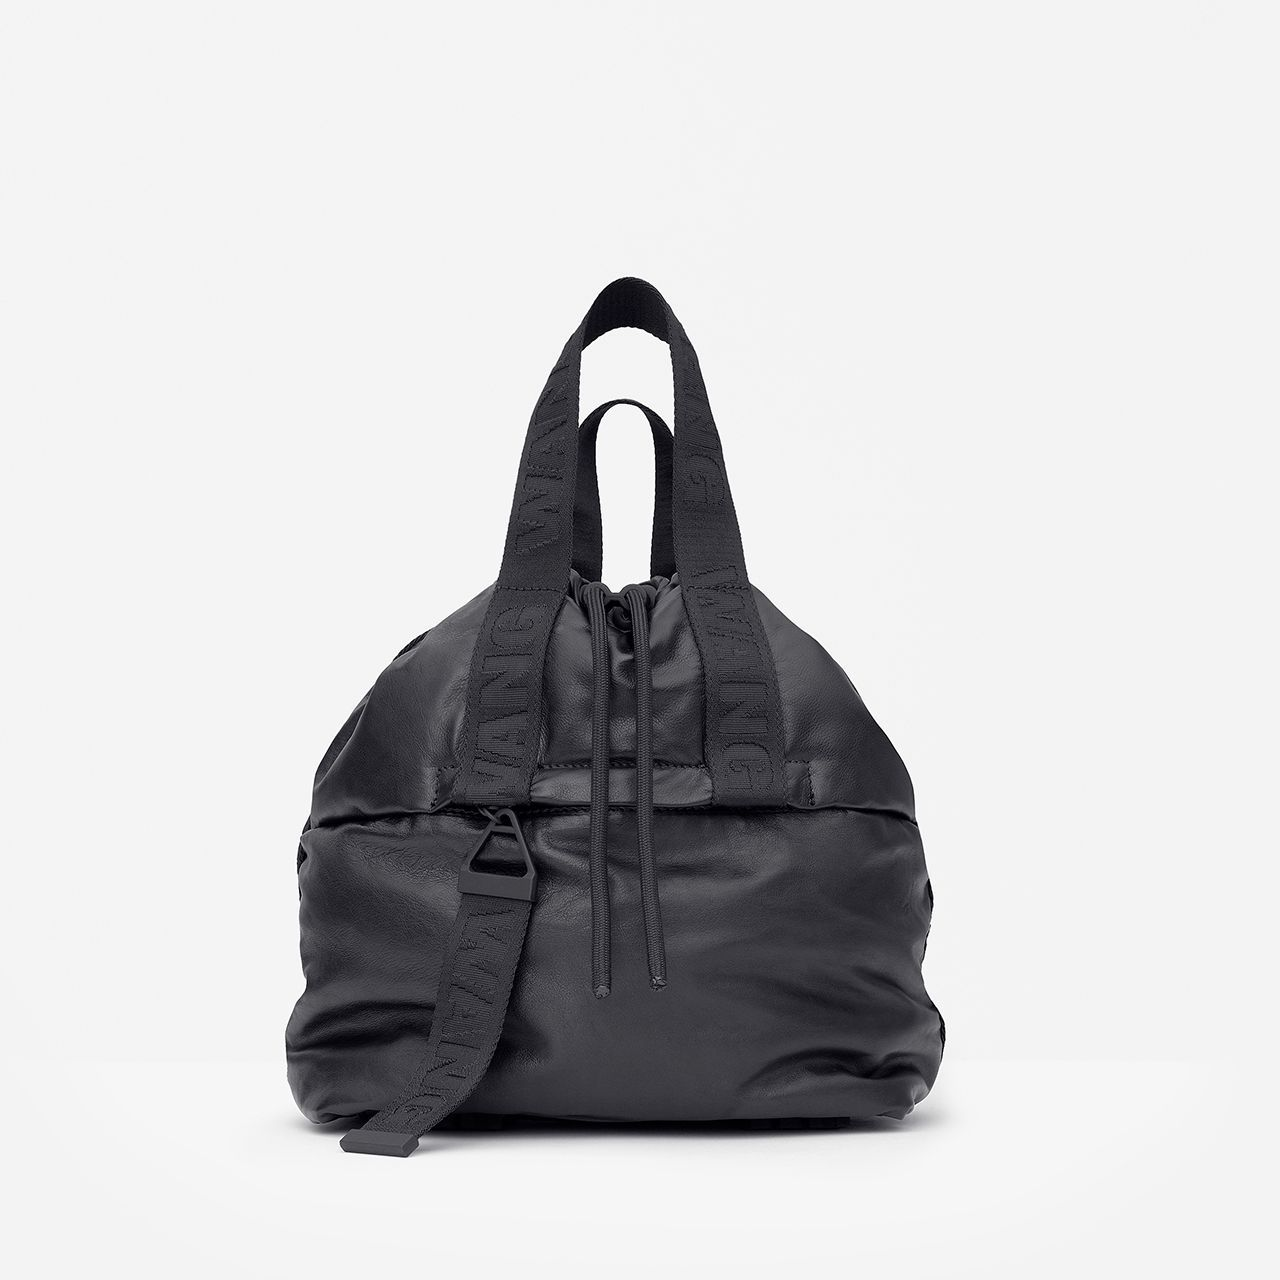 official photos da7f6 2a2ac ALEXANDER WANG x H&M US | Accesorize Me【2019 ...